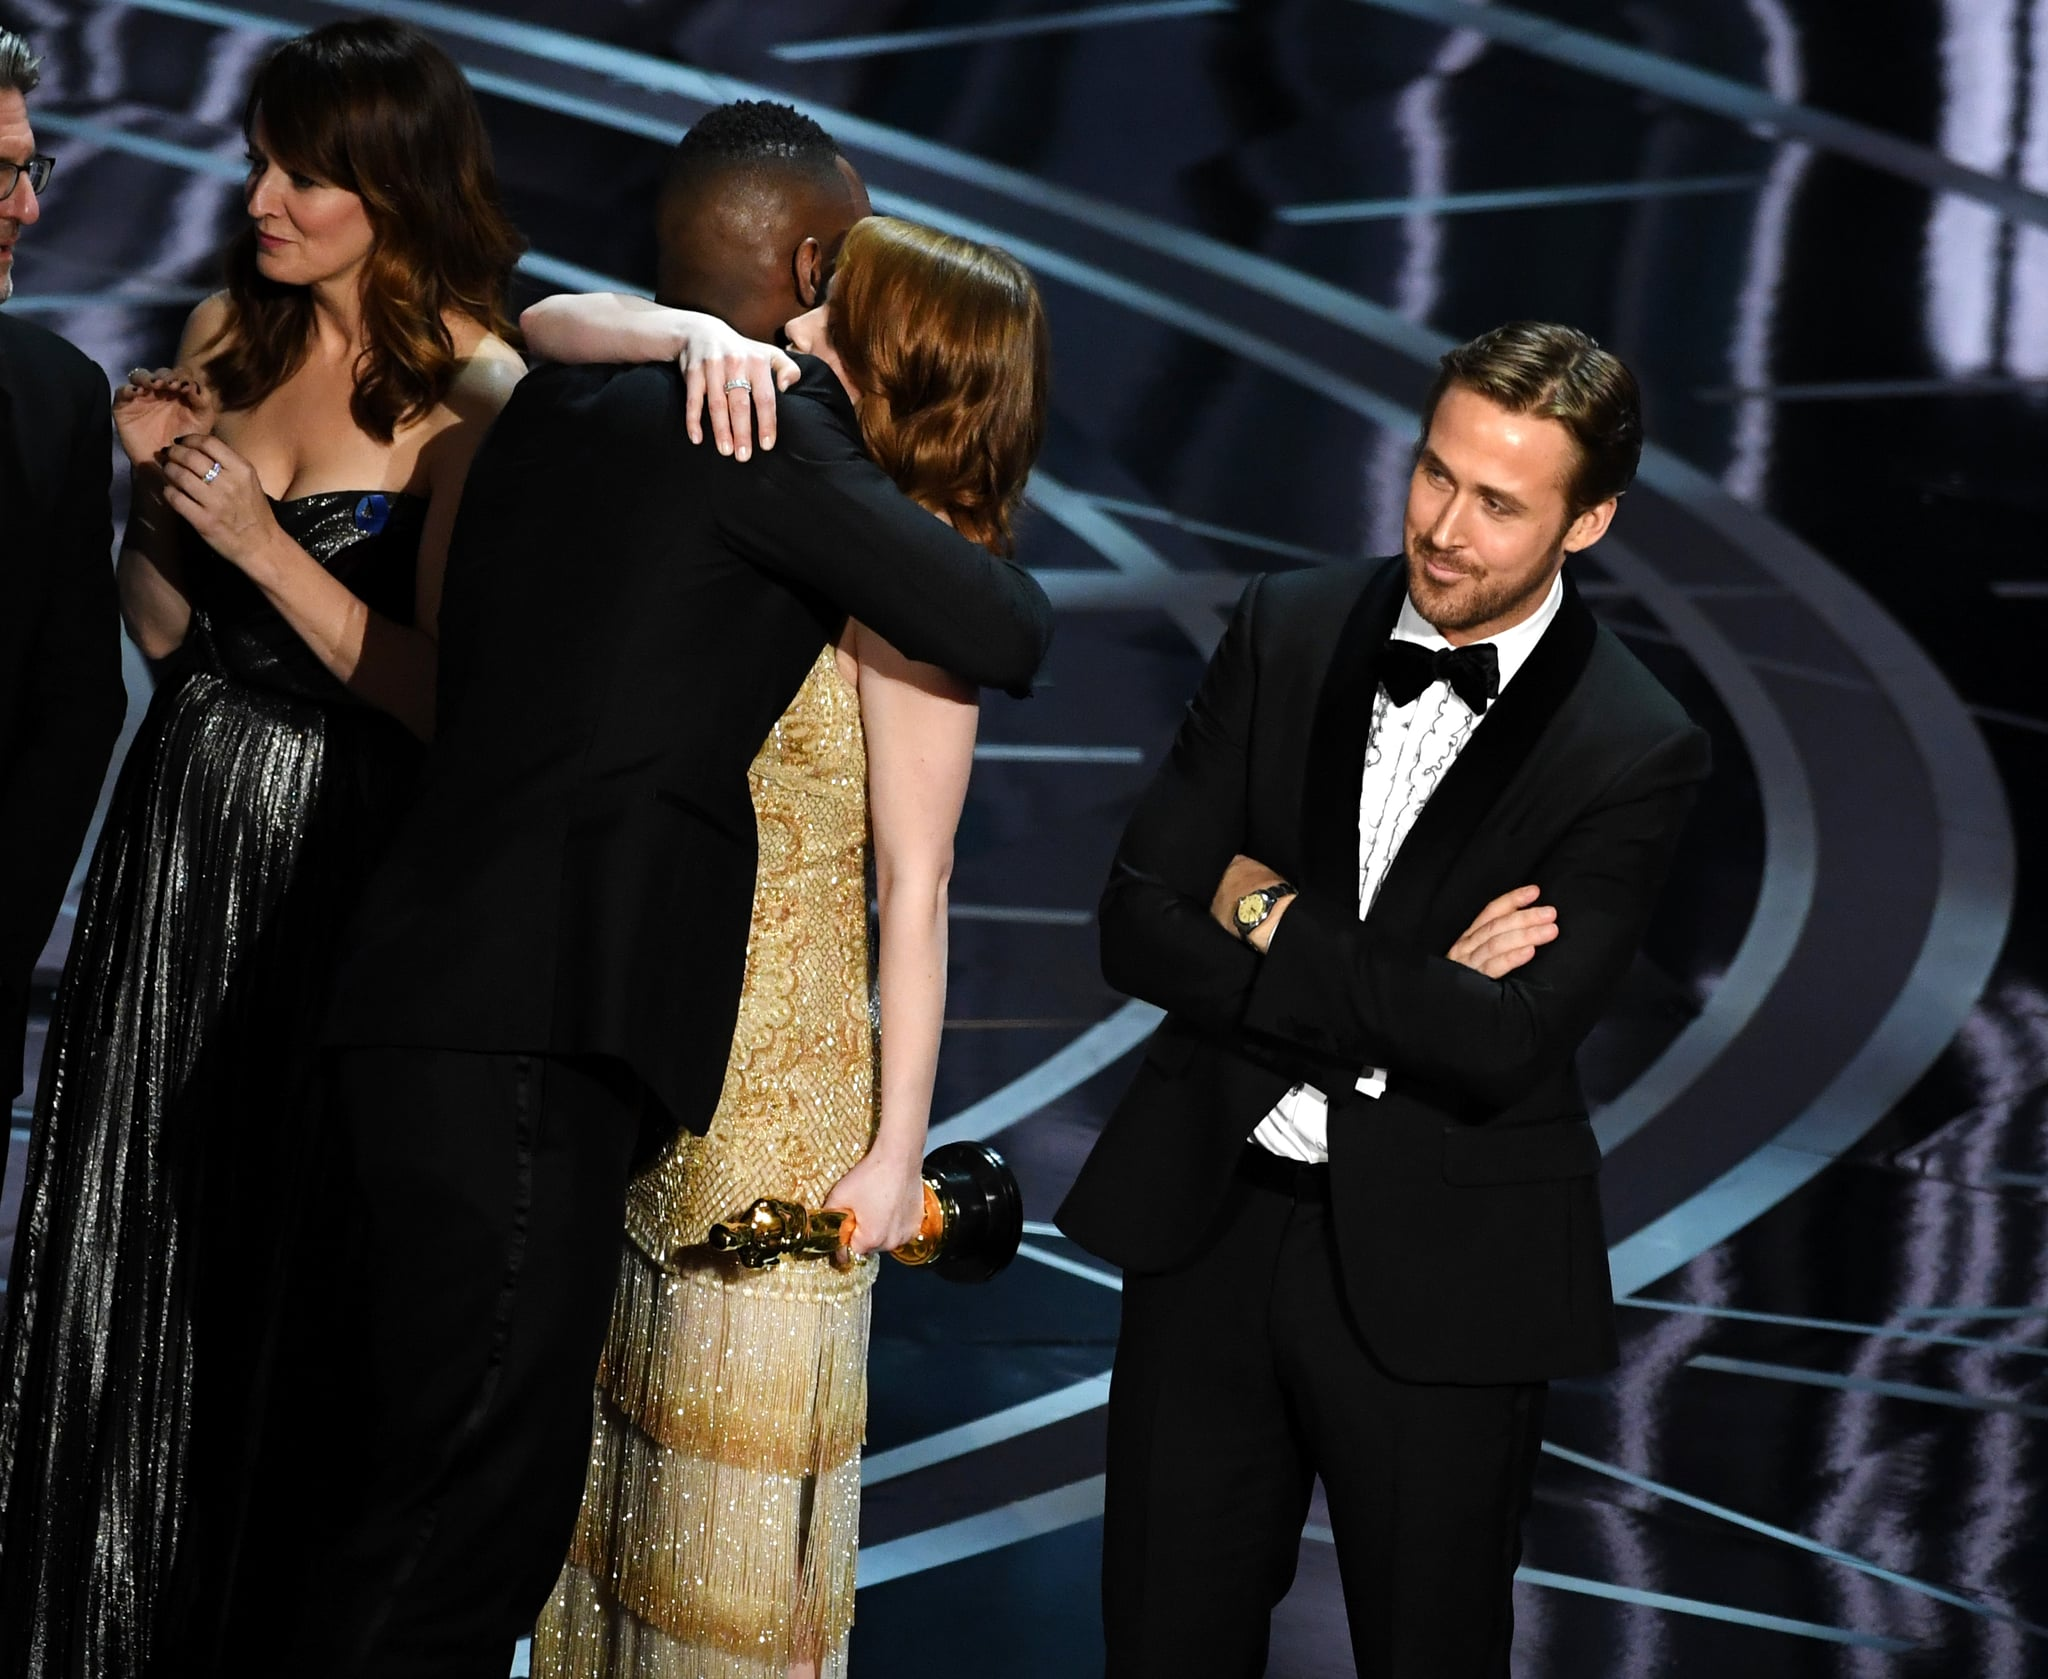 HOLLYWOOD, CA - FEBRUARY 26:  'Moonlight' actor Mahershala Ali hugs Emma Stone after it was discovered 'La La Land' was mistakenly announced as Best Picture onstage during the 89th Annual Academy Awards at Hollywood & Highland Centre on February 26, 2017 in Hollywood, California.  (Photo by Kevin Winter/Getty Images)